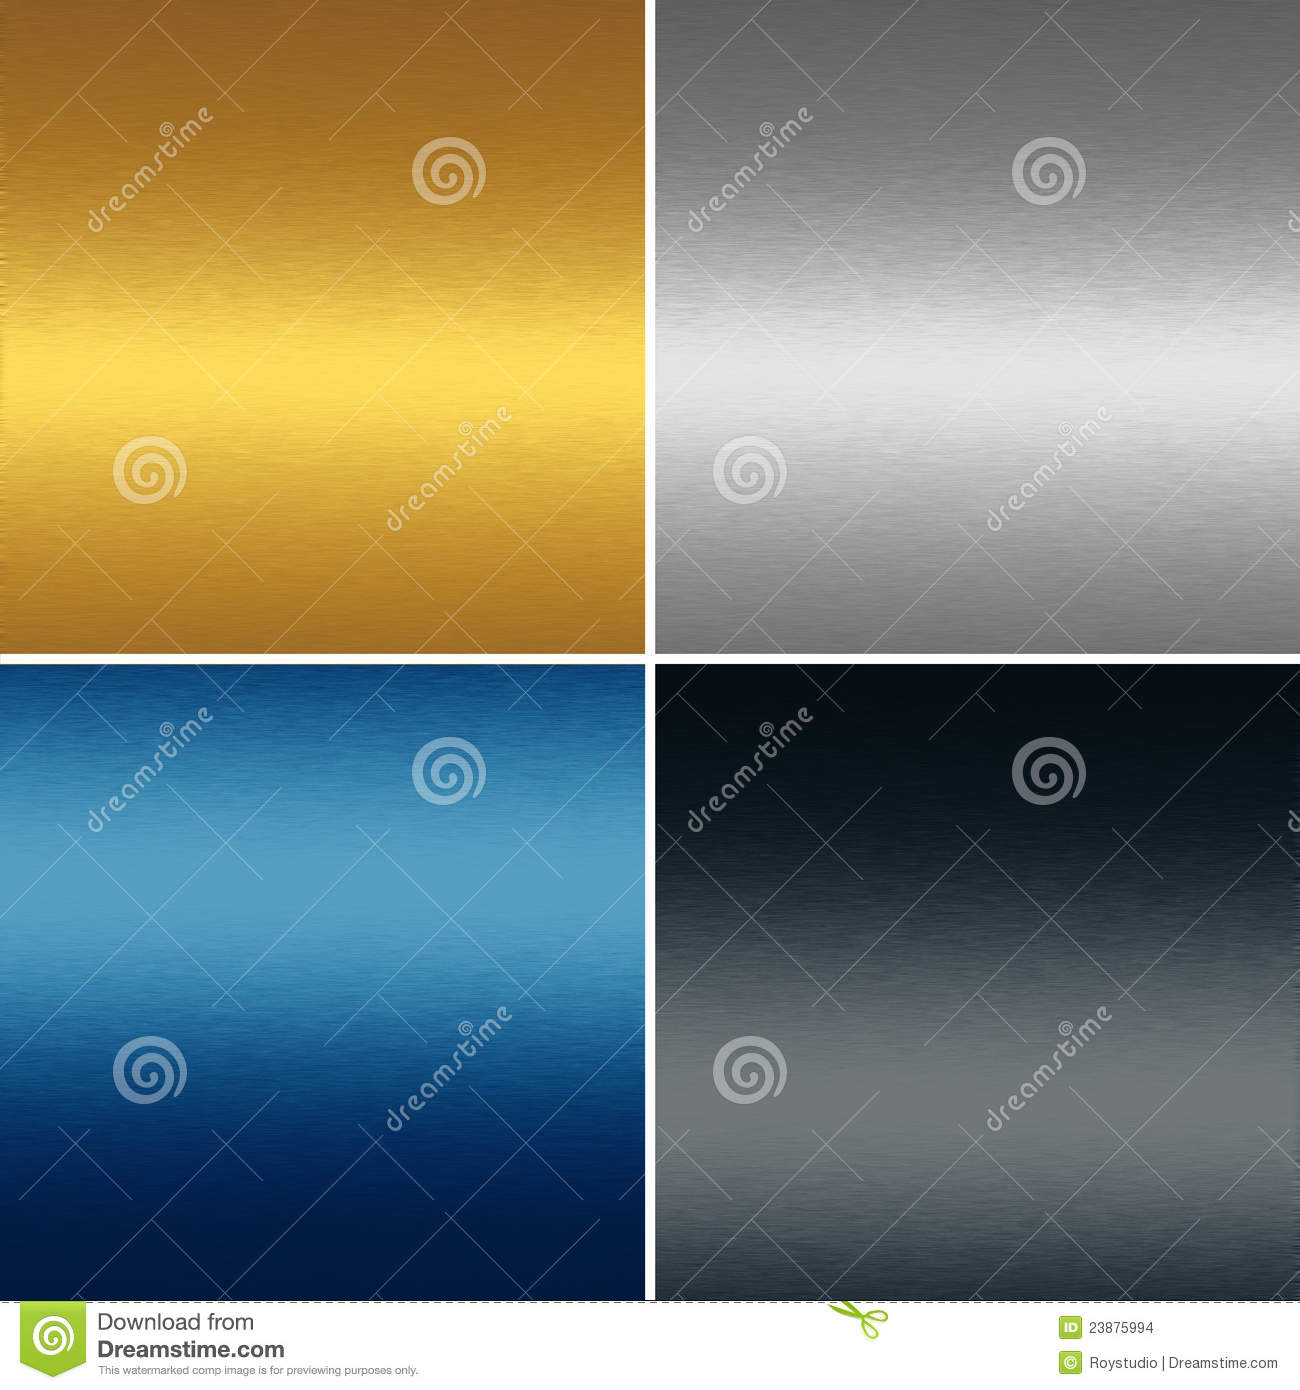 Metal textures backgrounds collection